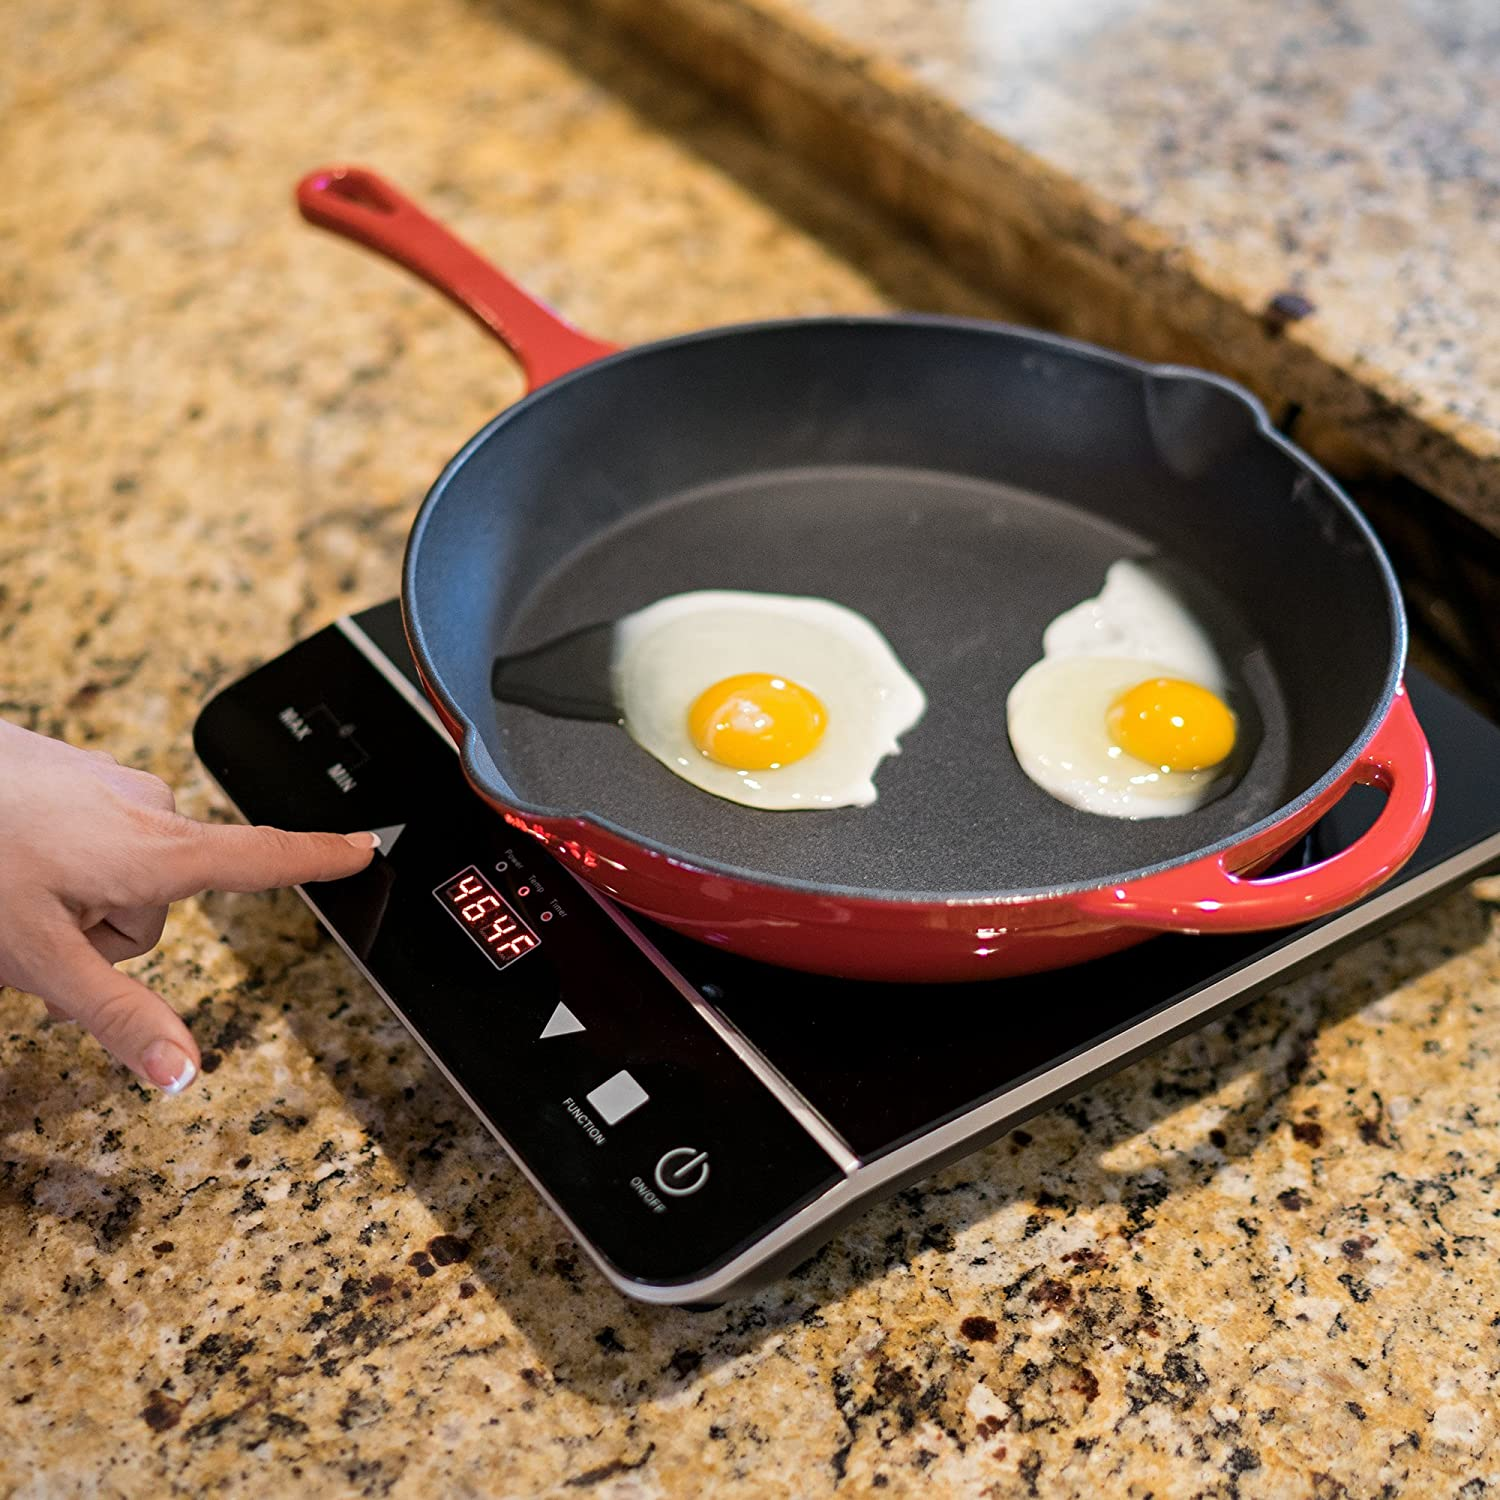 INDUXPERT Portable Induction Cooktop 1800W with Power, Temperature and Timer Setting - (Only Compatible with Magnetic Cookware) - Electric cooktop with single induction burner